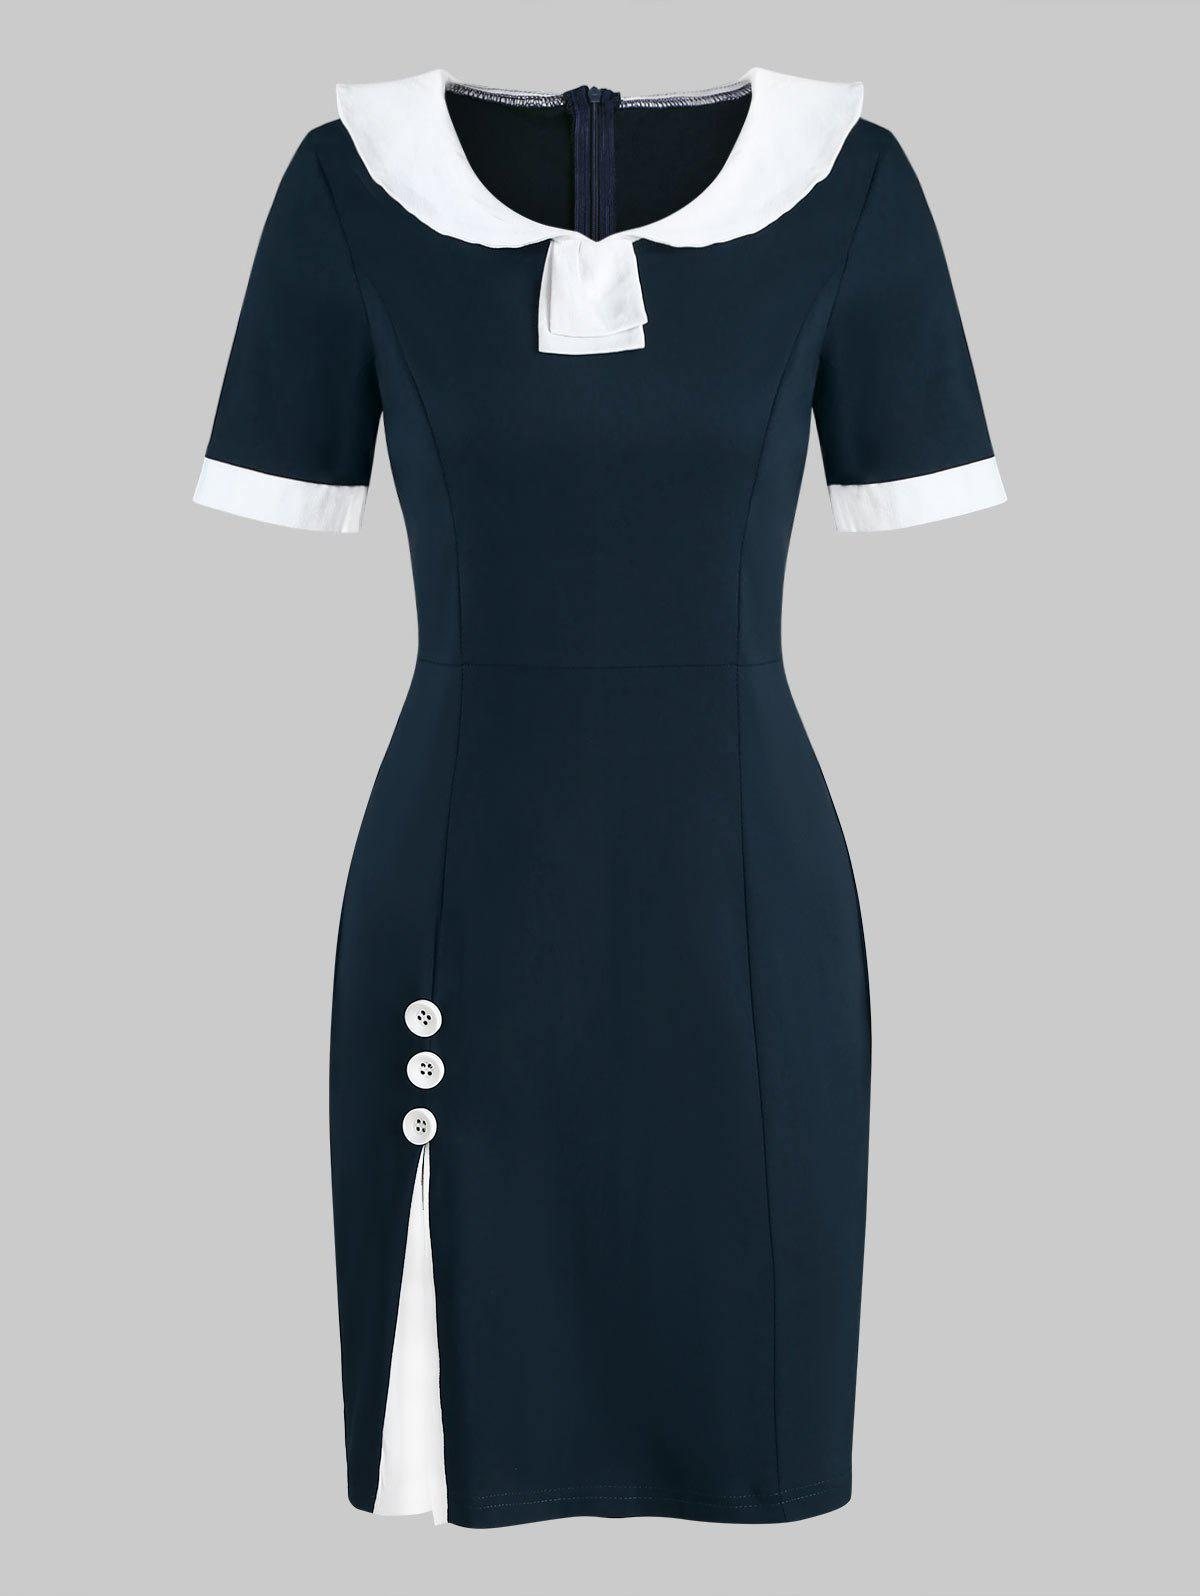 Two Tone Vintage Fitted Sailor Short Dress - MIDNIGHT BLUE M